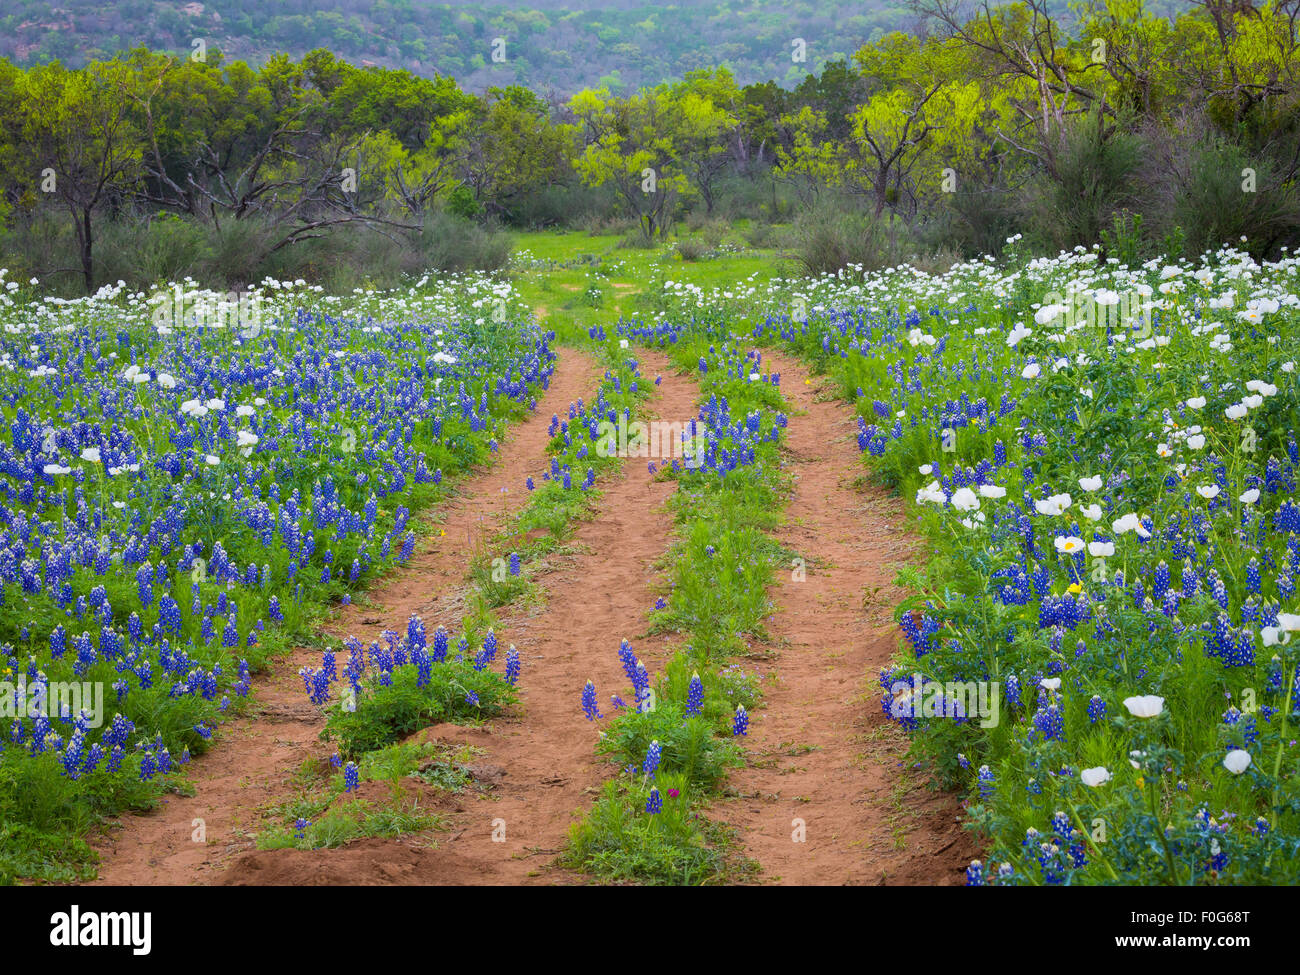 The Texas Hill Country is a twenty-five county region of Central Texas and South Texas - Stock Image